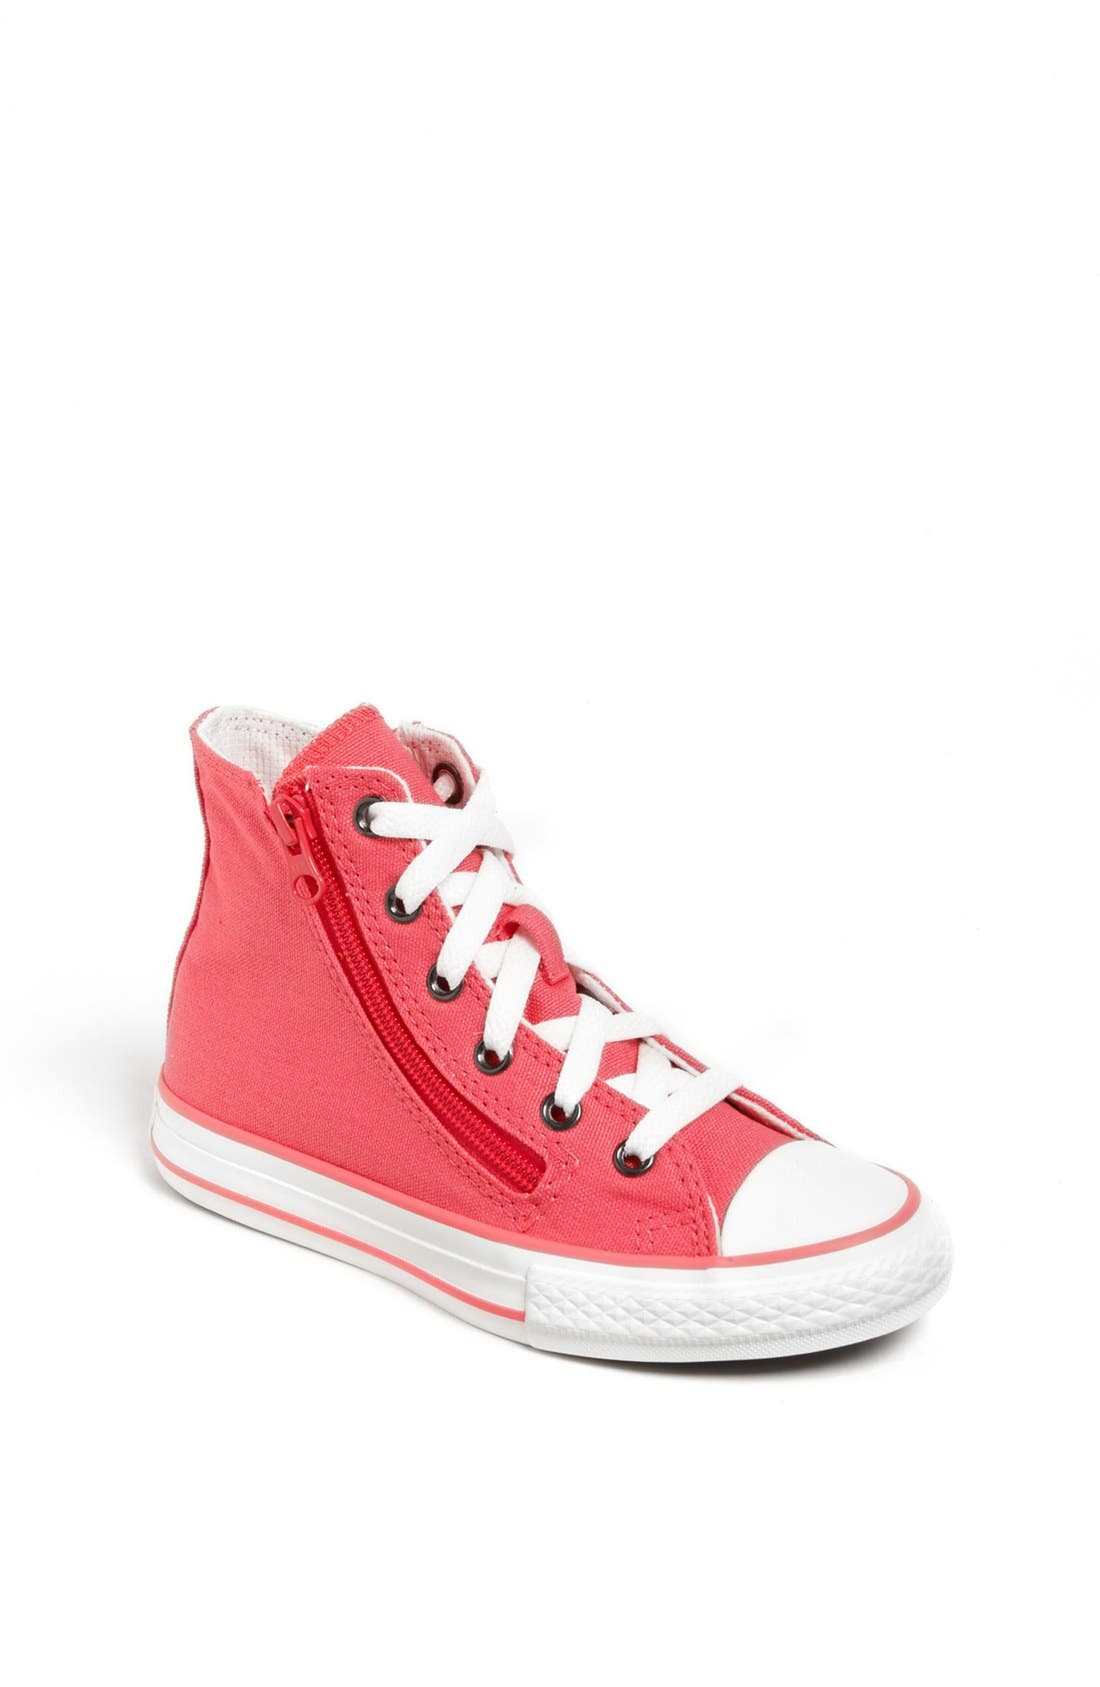 Main Image - Converse Chuck Taylor® All Star® High Top Sneaker (Toddler, Little Kid & Big Kid)